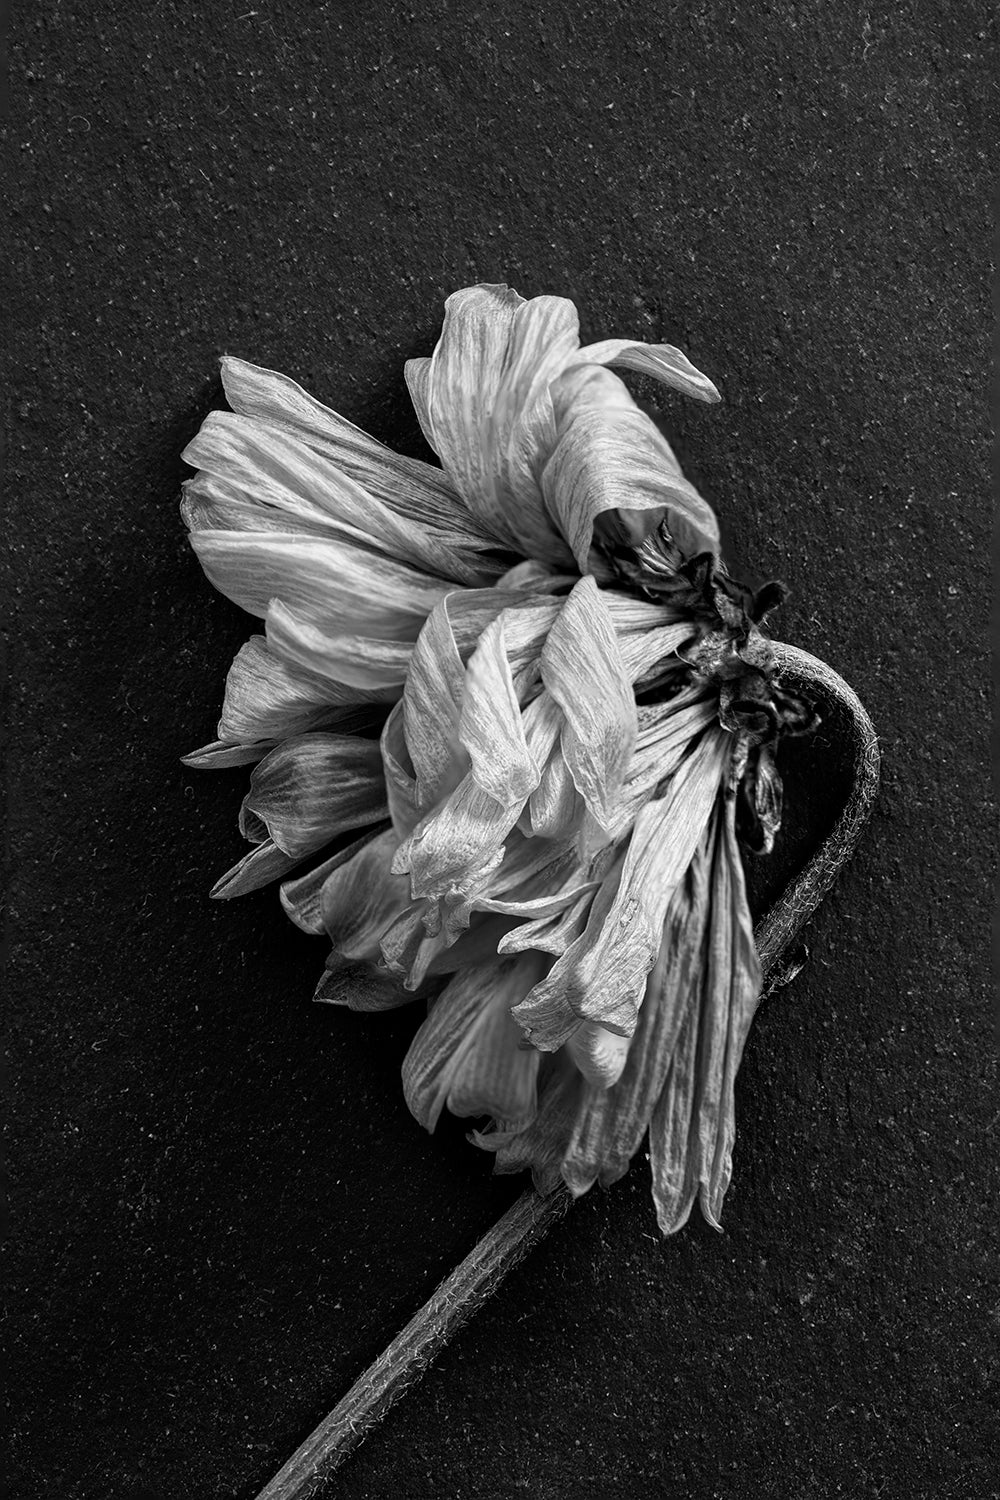 Dead Yellow Flower on Dark Slate: Black and White Photograph by Keith Dotson. Click to buy a fine art print.